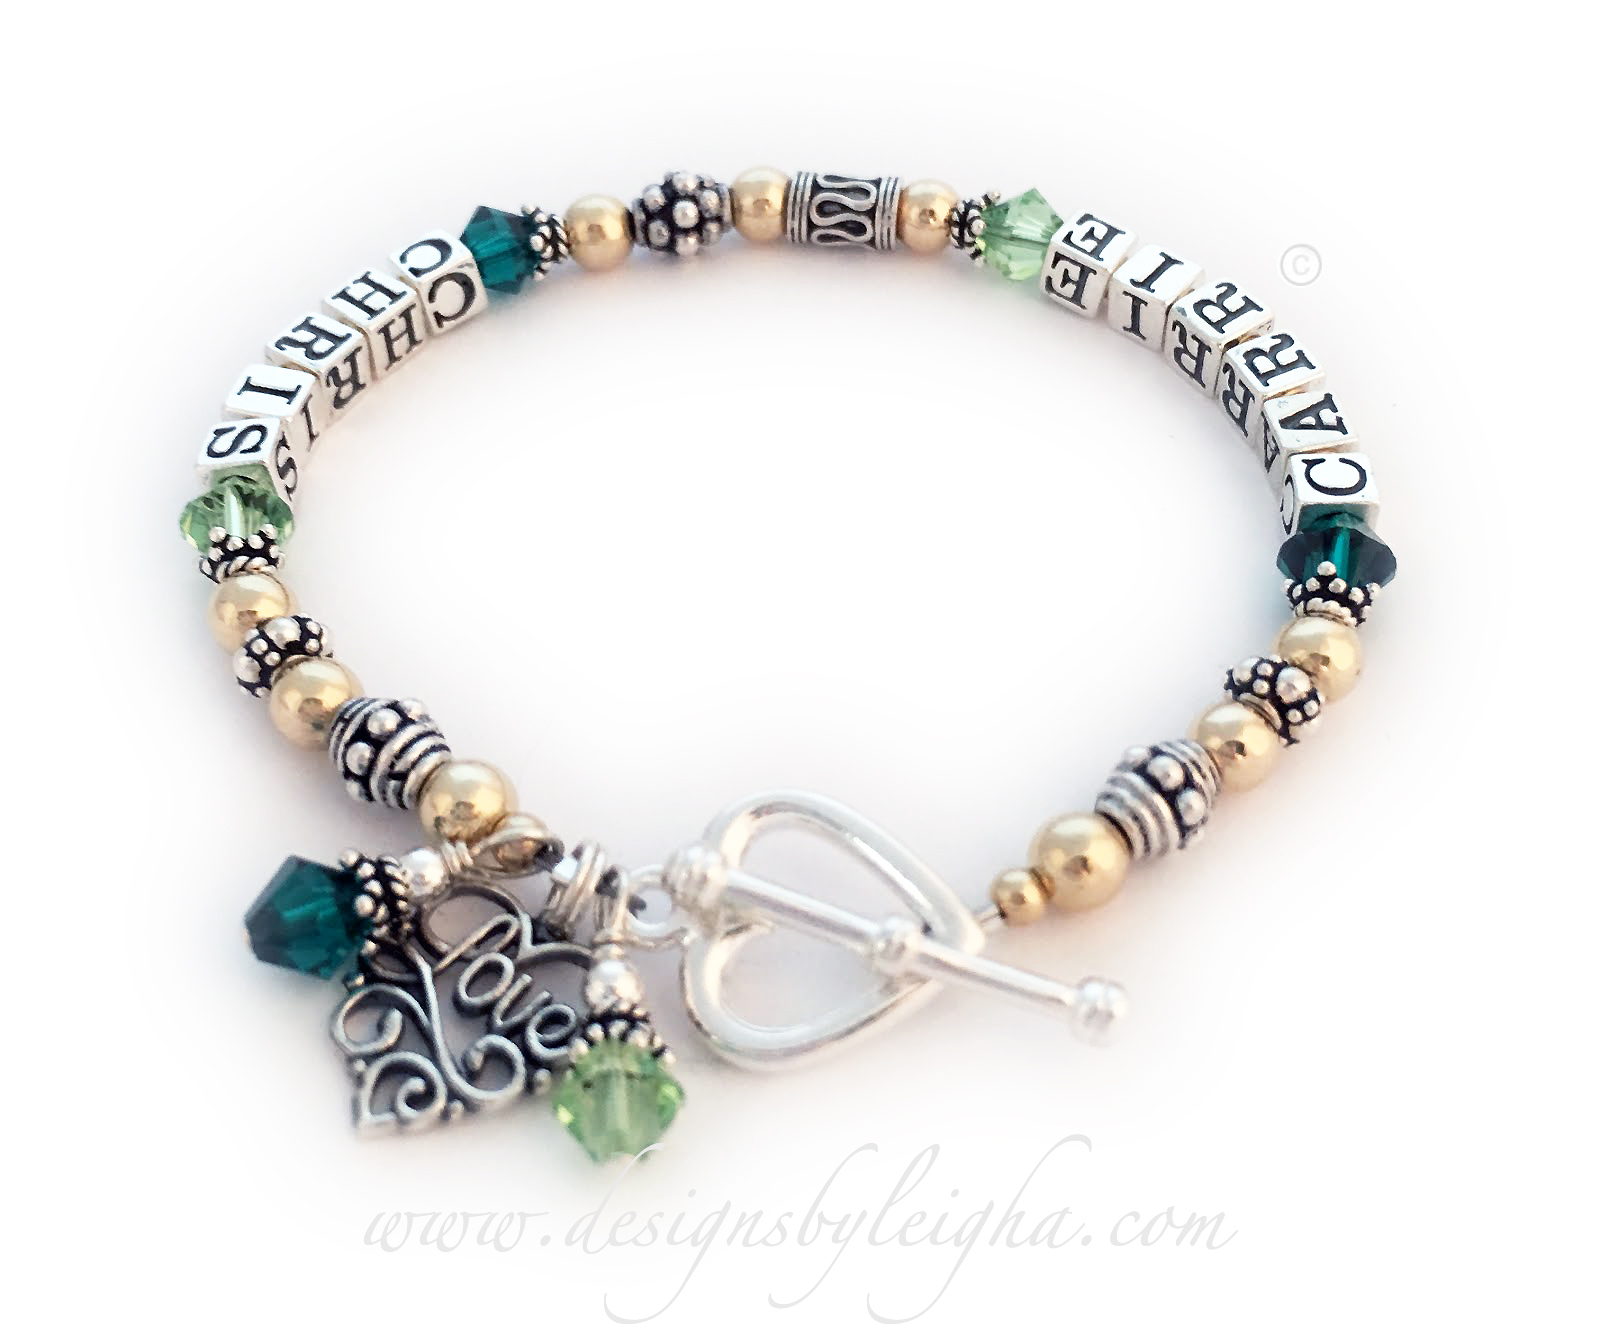 DBL-G7-1string   Enter: CLAIRE CHRIS / greens  Claire and Chris Gold Mother Bracelet with multiple names shown with options: They upgraded to a Heart Toggle clasp and added 3 charms: 2 Birthstone Crystal Dangles and a Filigree Love charm.